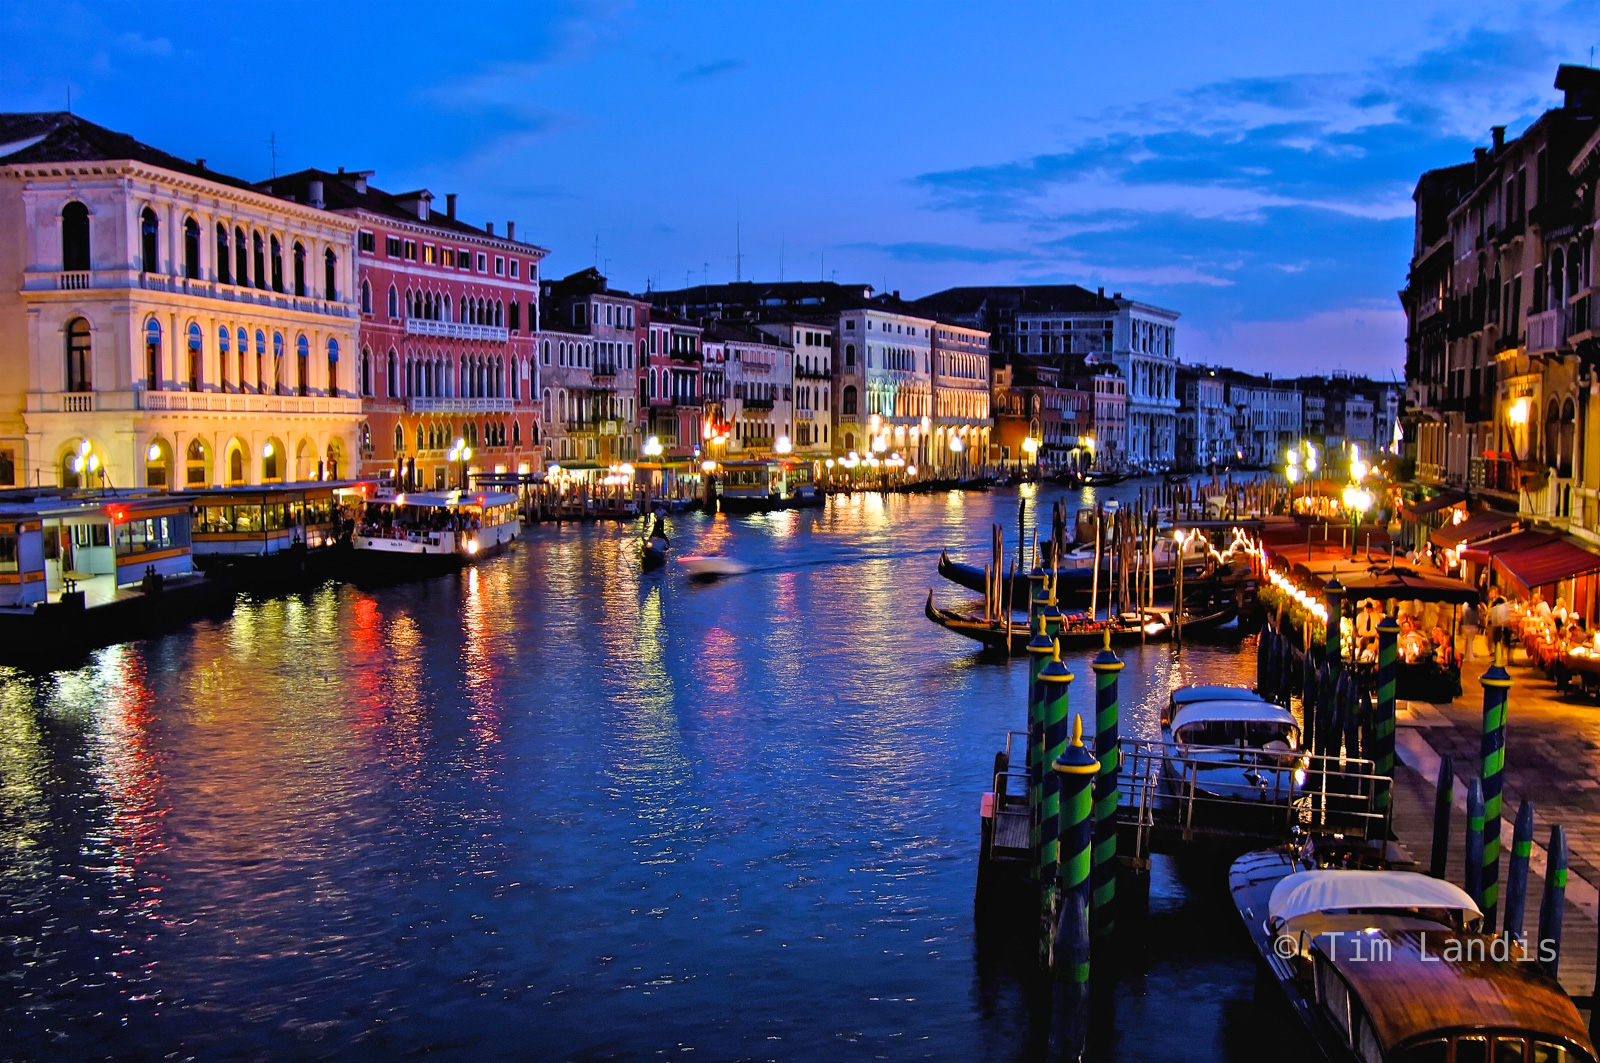 Grand Canal, Italy, Venice, reflections, photo